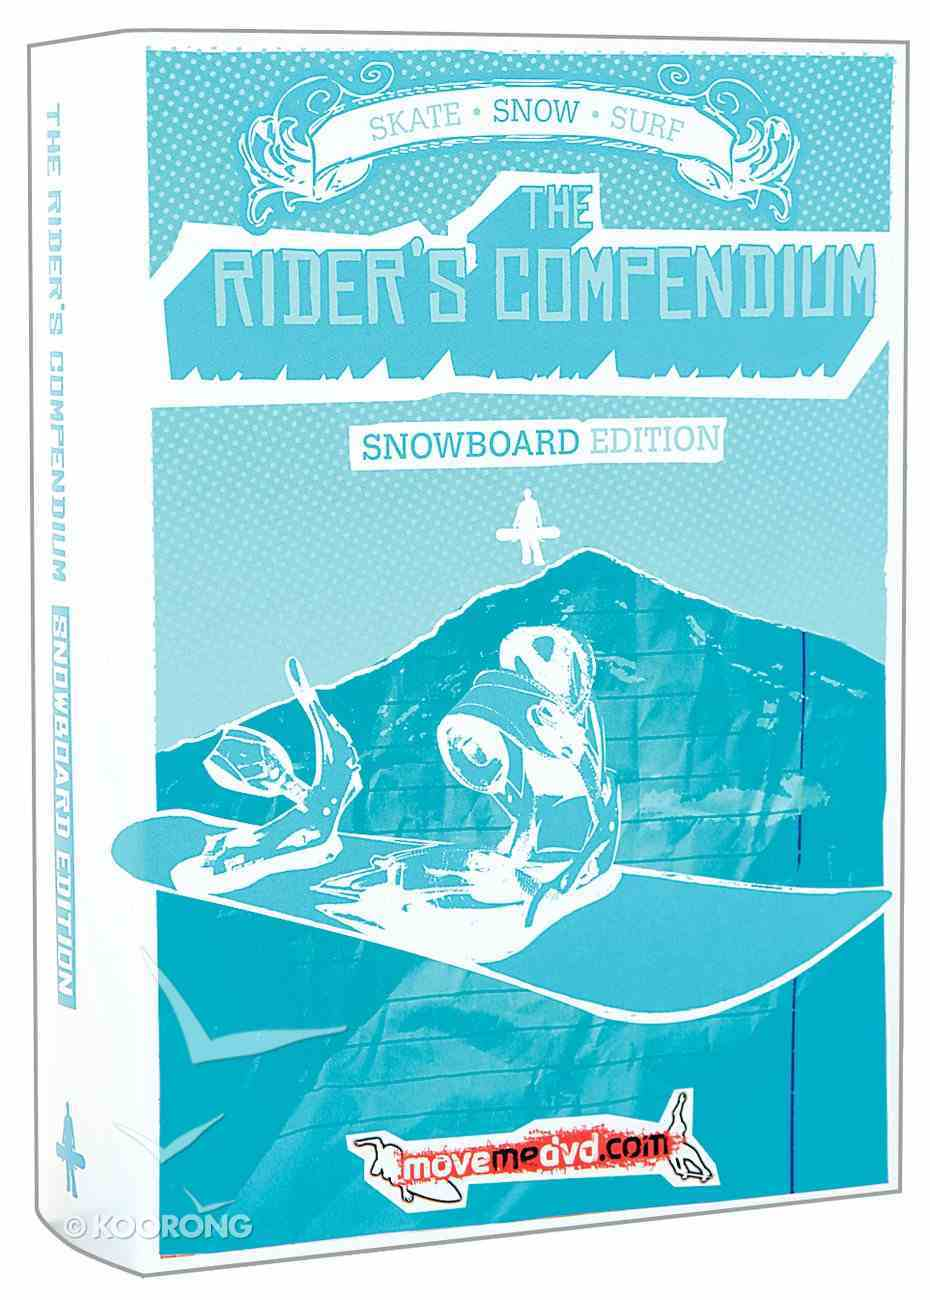 The Rider's Compendium: Snowboard Edition (3-pack) Pack